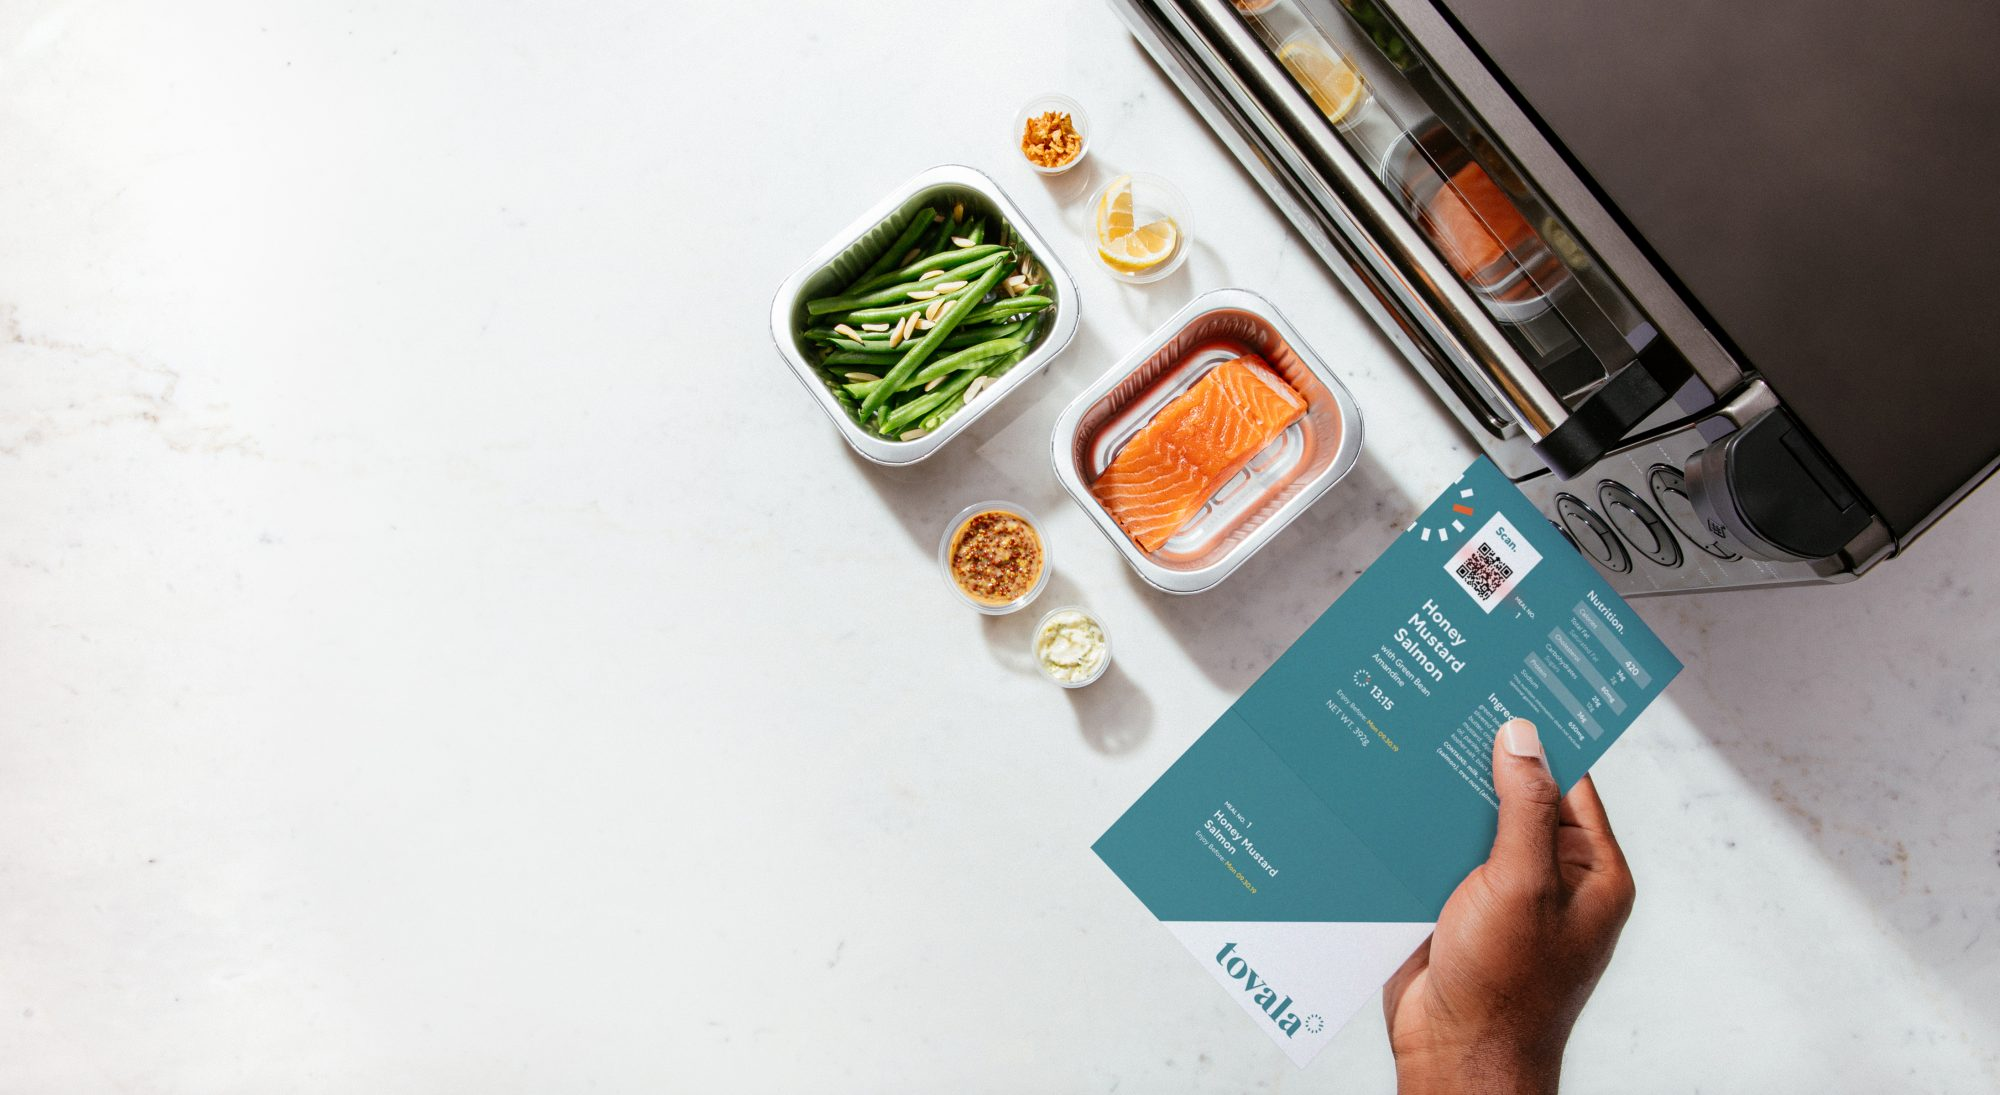 Tovala oven and meal kit showing barcode reader